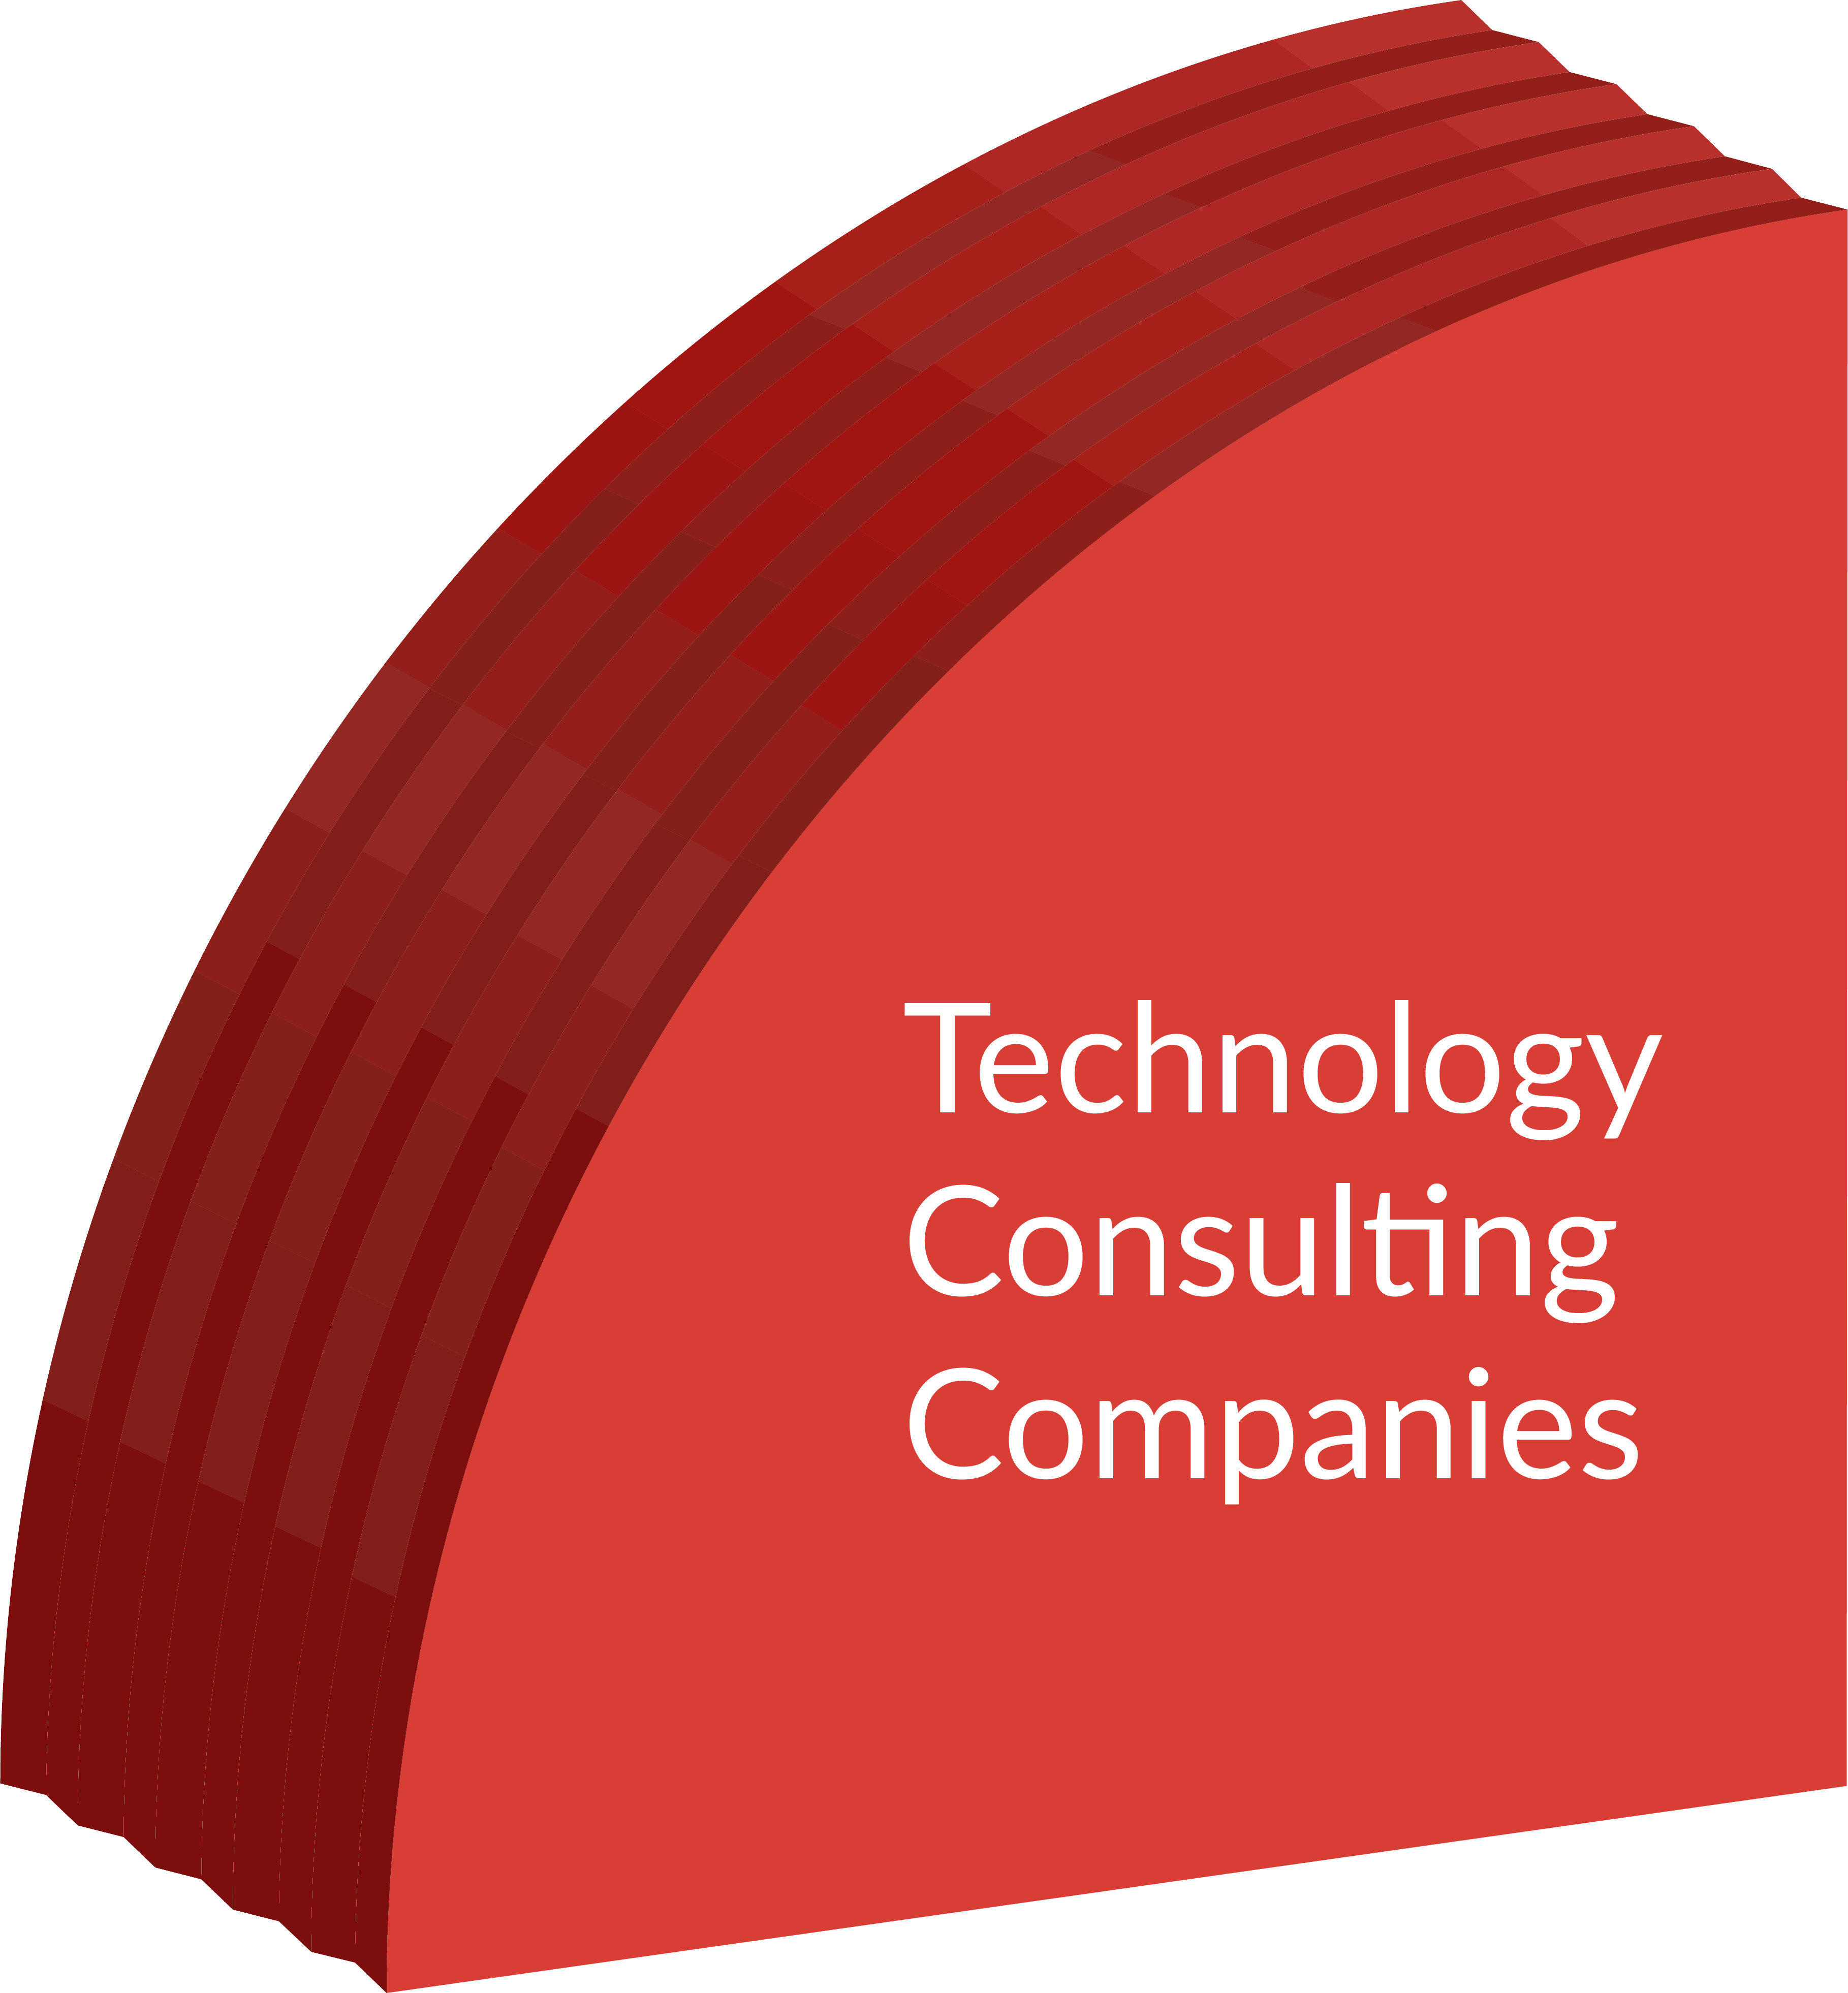 Technology Consulting Companies Slice